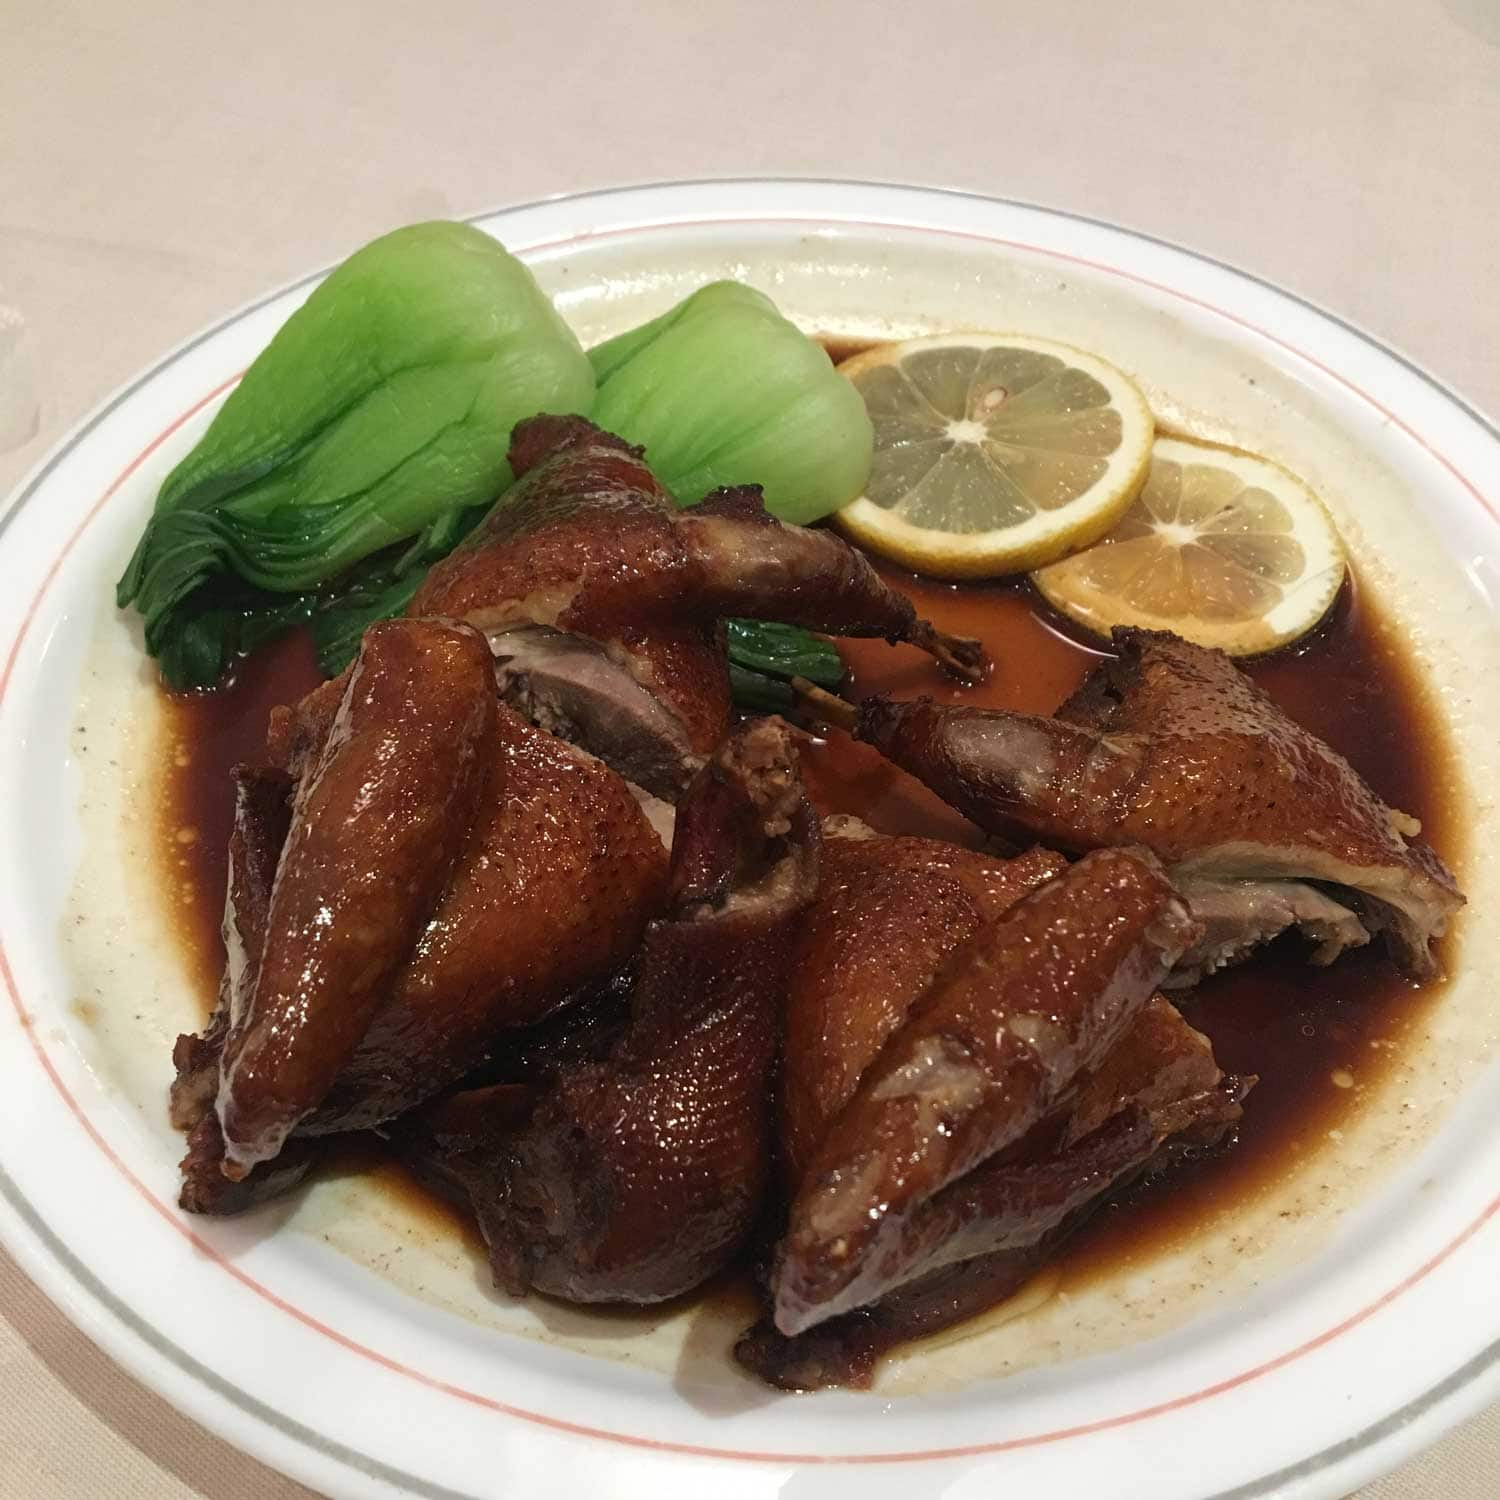 Roasted Pigeon at Fat Siu Lau